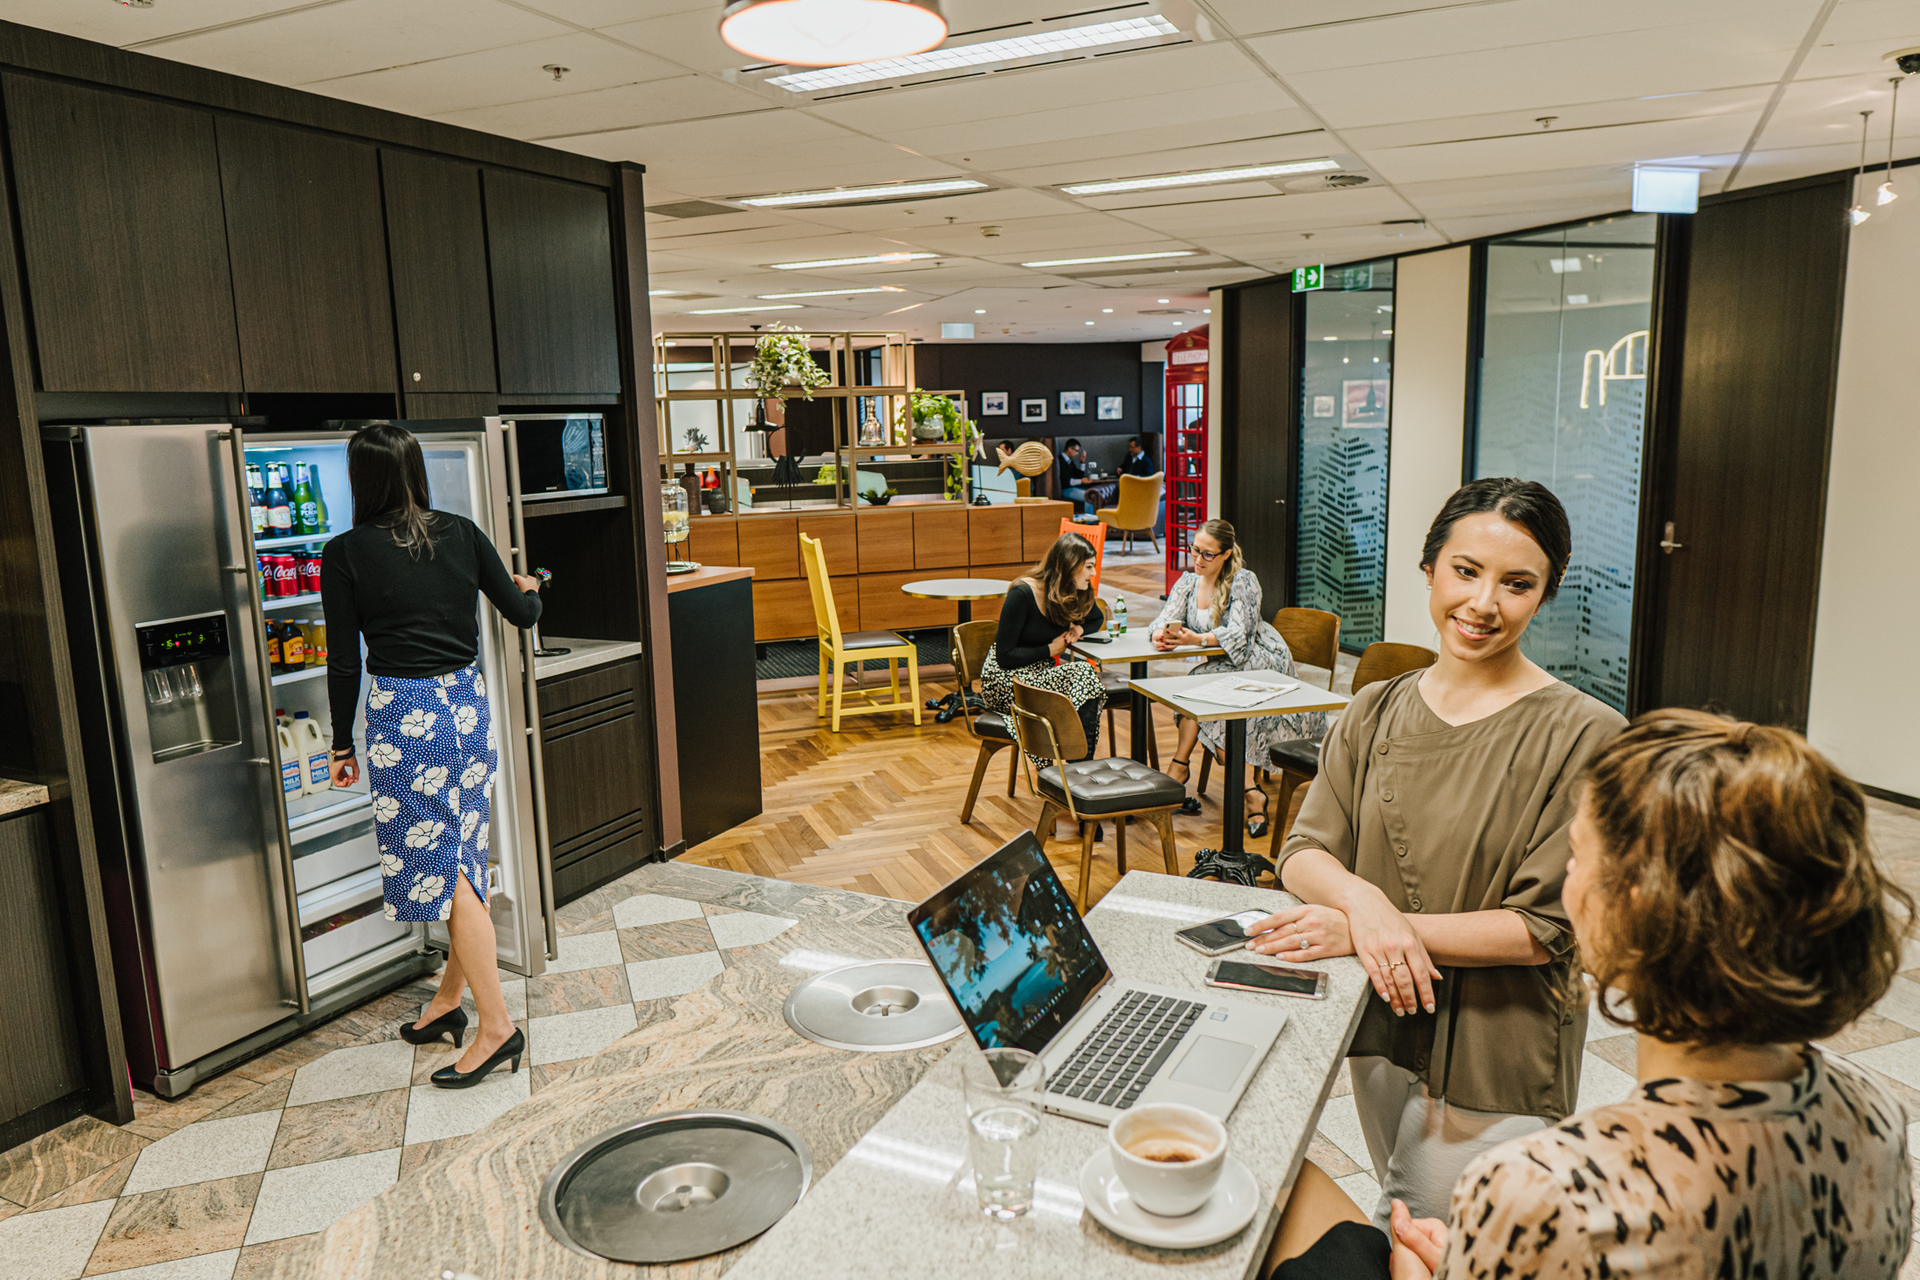 Modern 4-person private workspace in the heart of North Sydney with breath-taking views